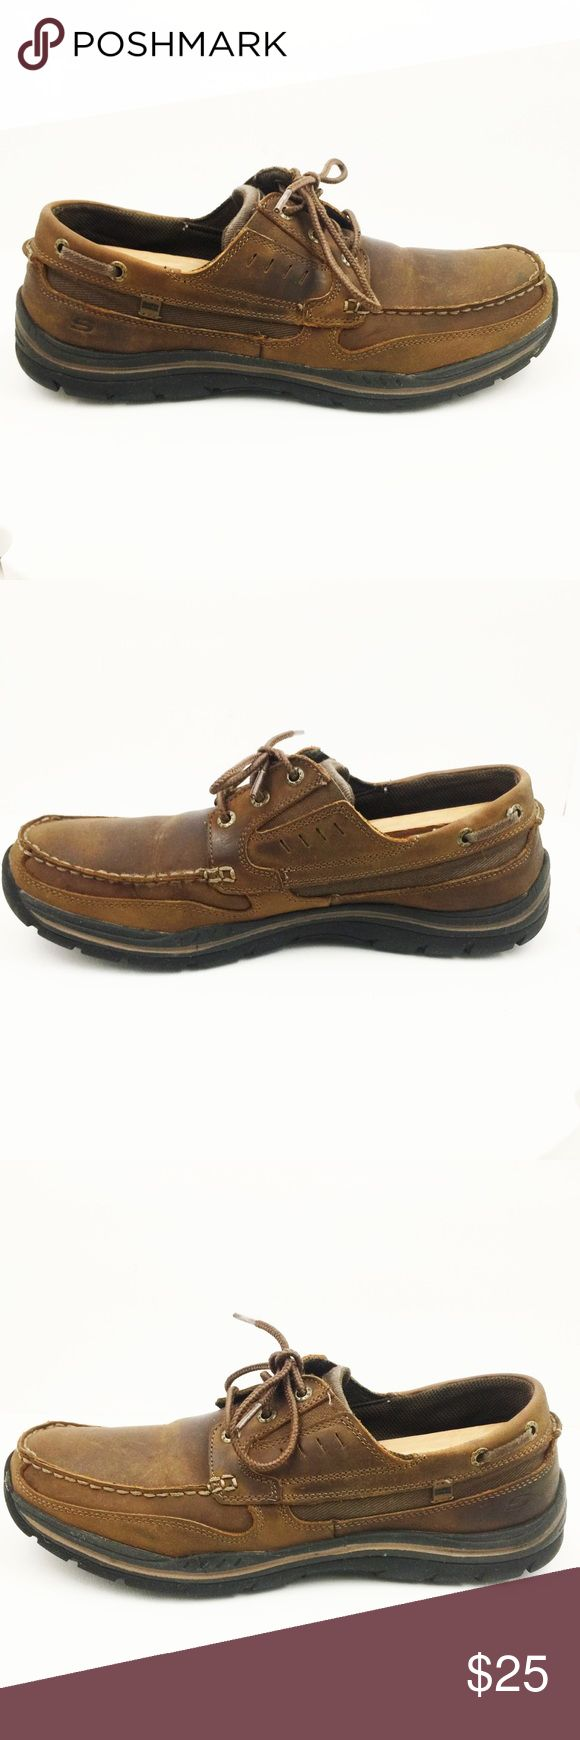 Skechers Leather Oxford Casual Loafers Size 11.5 Sketchers Gembel Brown leather lace up oxford casual loafer shoes men's size 11.5. Skechers Shoes Loafers & Slip-Ons